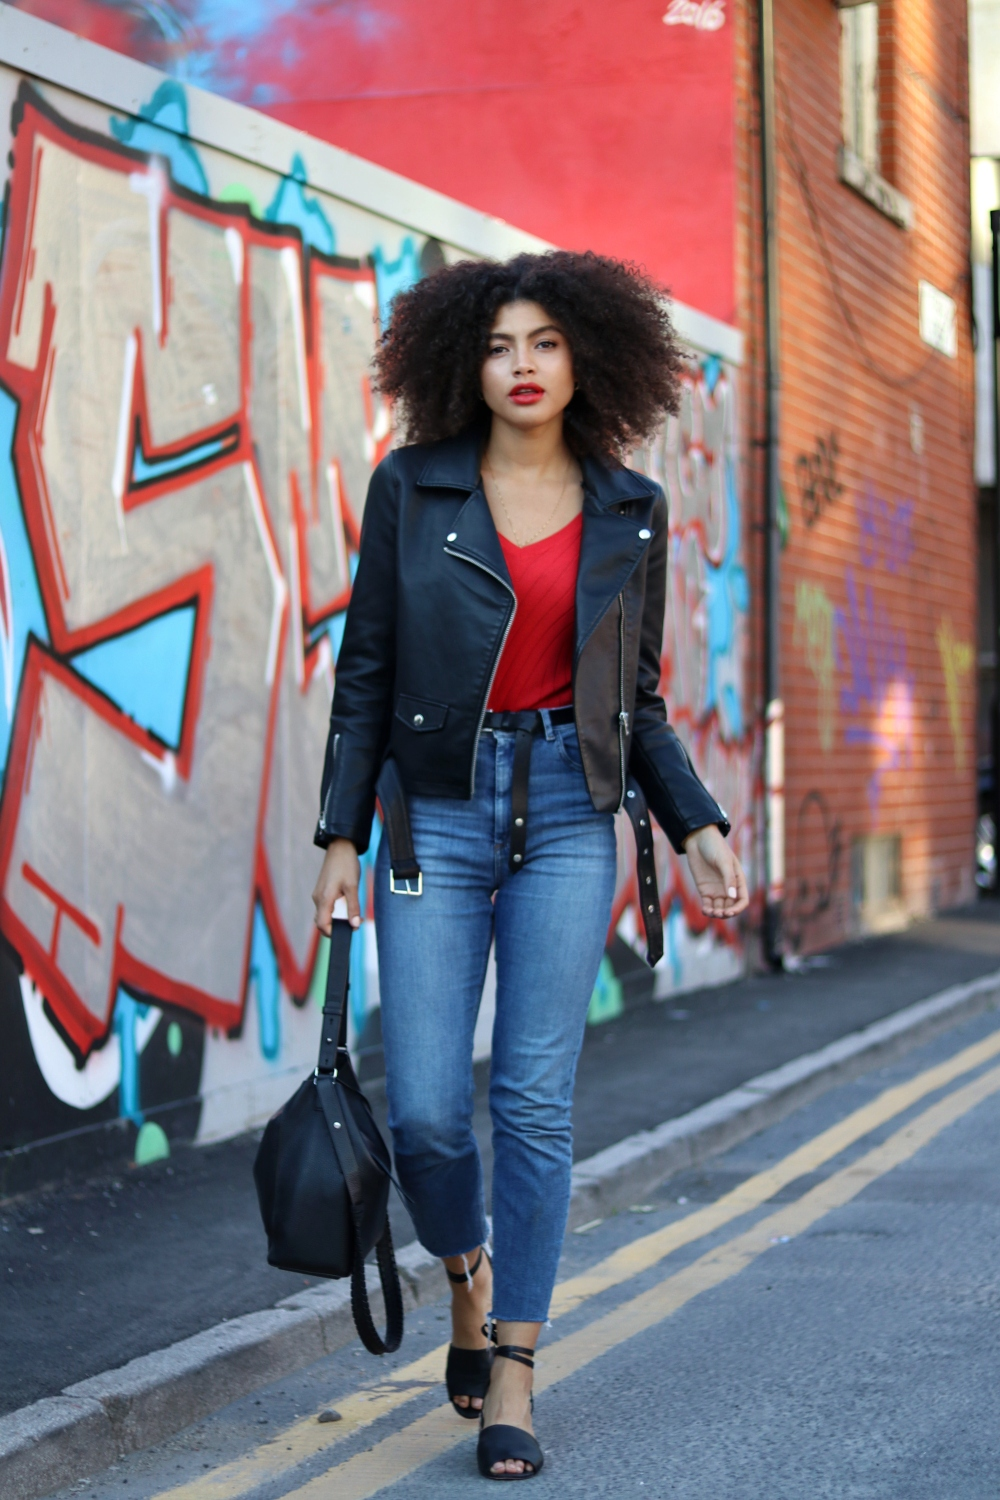 Topshop Faux Leather Biker Jacket Asos Farleigh Jeans and Red Top Outfit